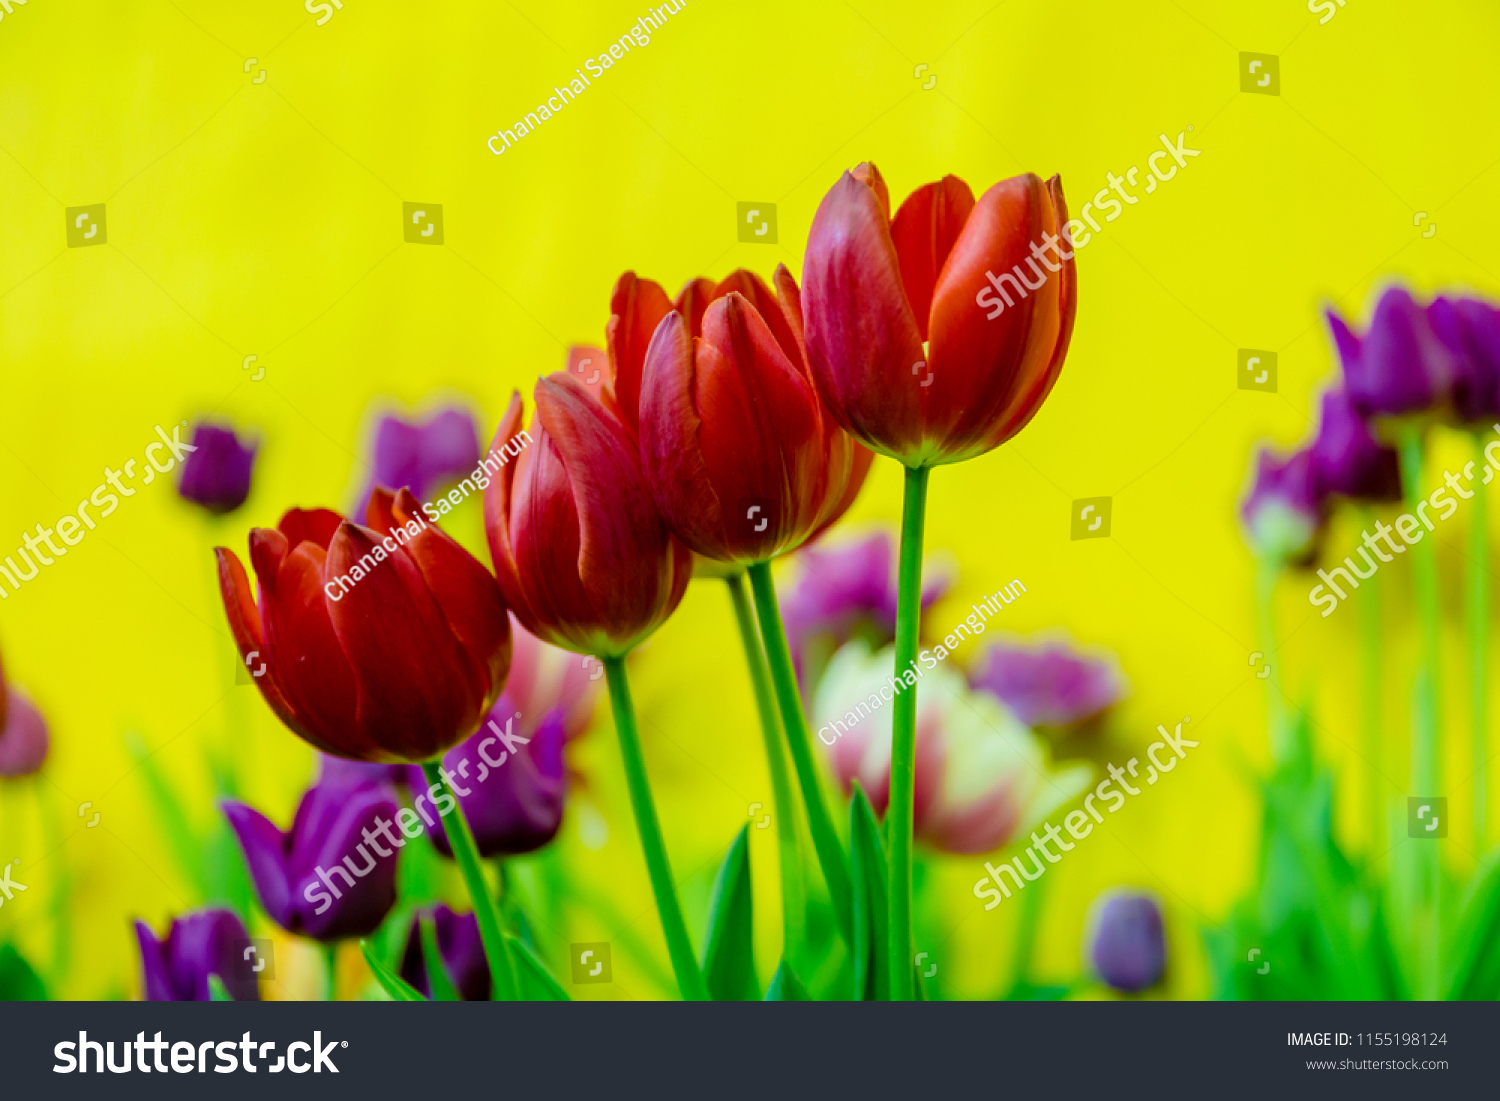 Red Tulips Yellow Color Background Meaning Stock Photo Edit Now